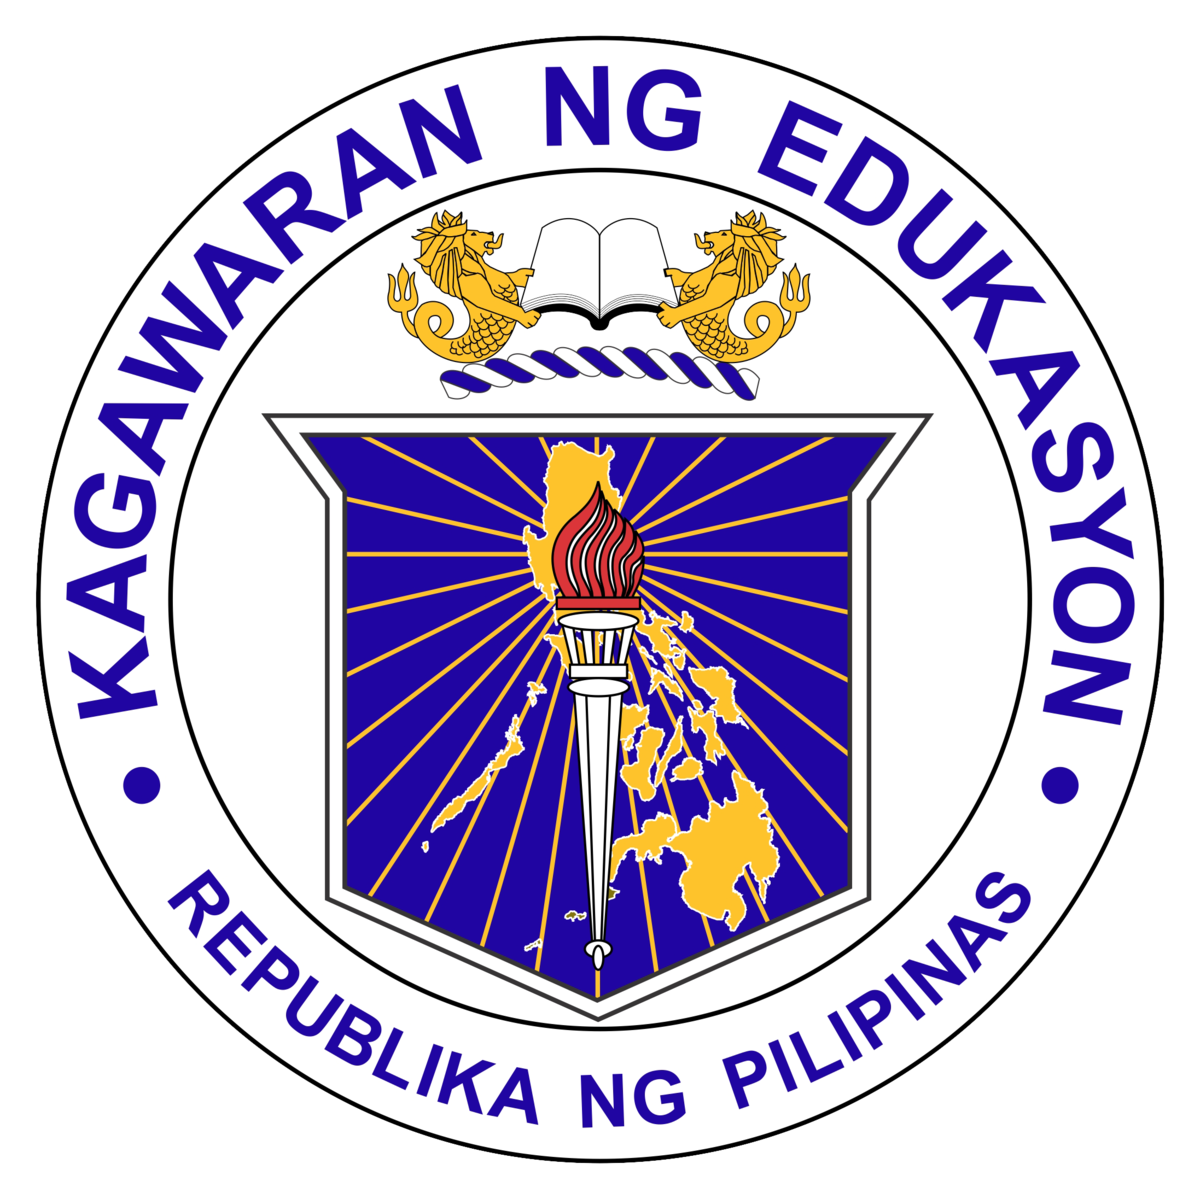 Secretary of Education (Philippines) - Wikipedia